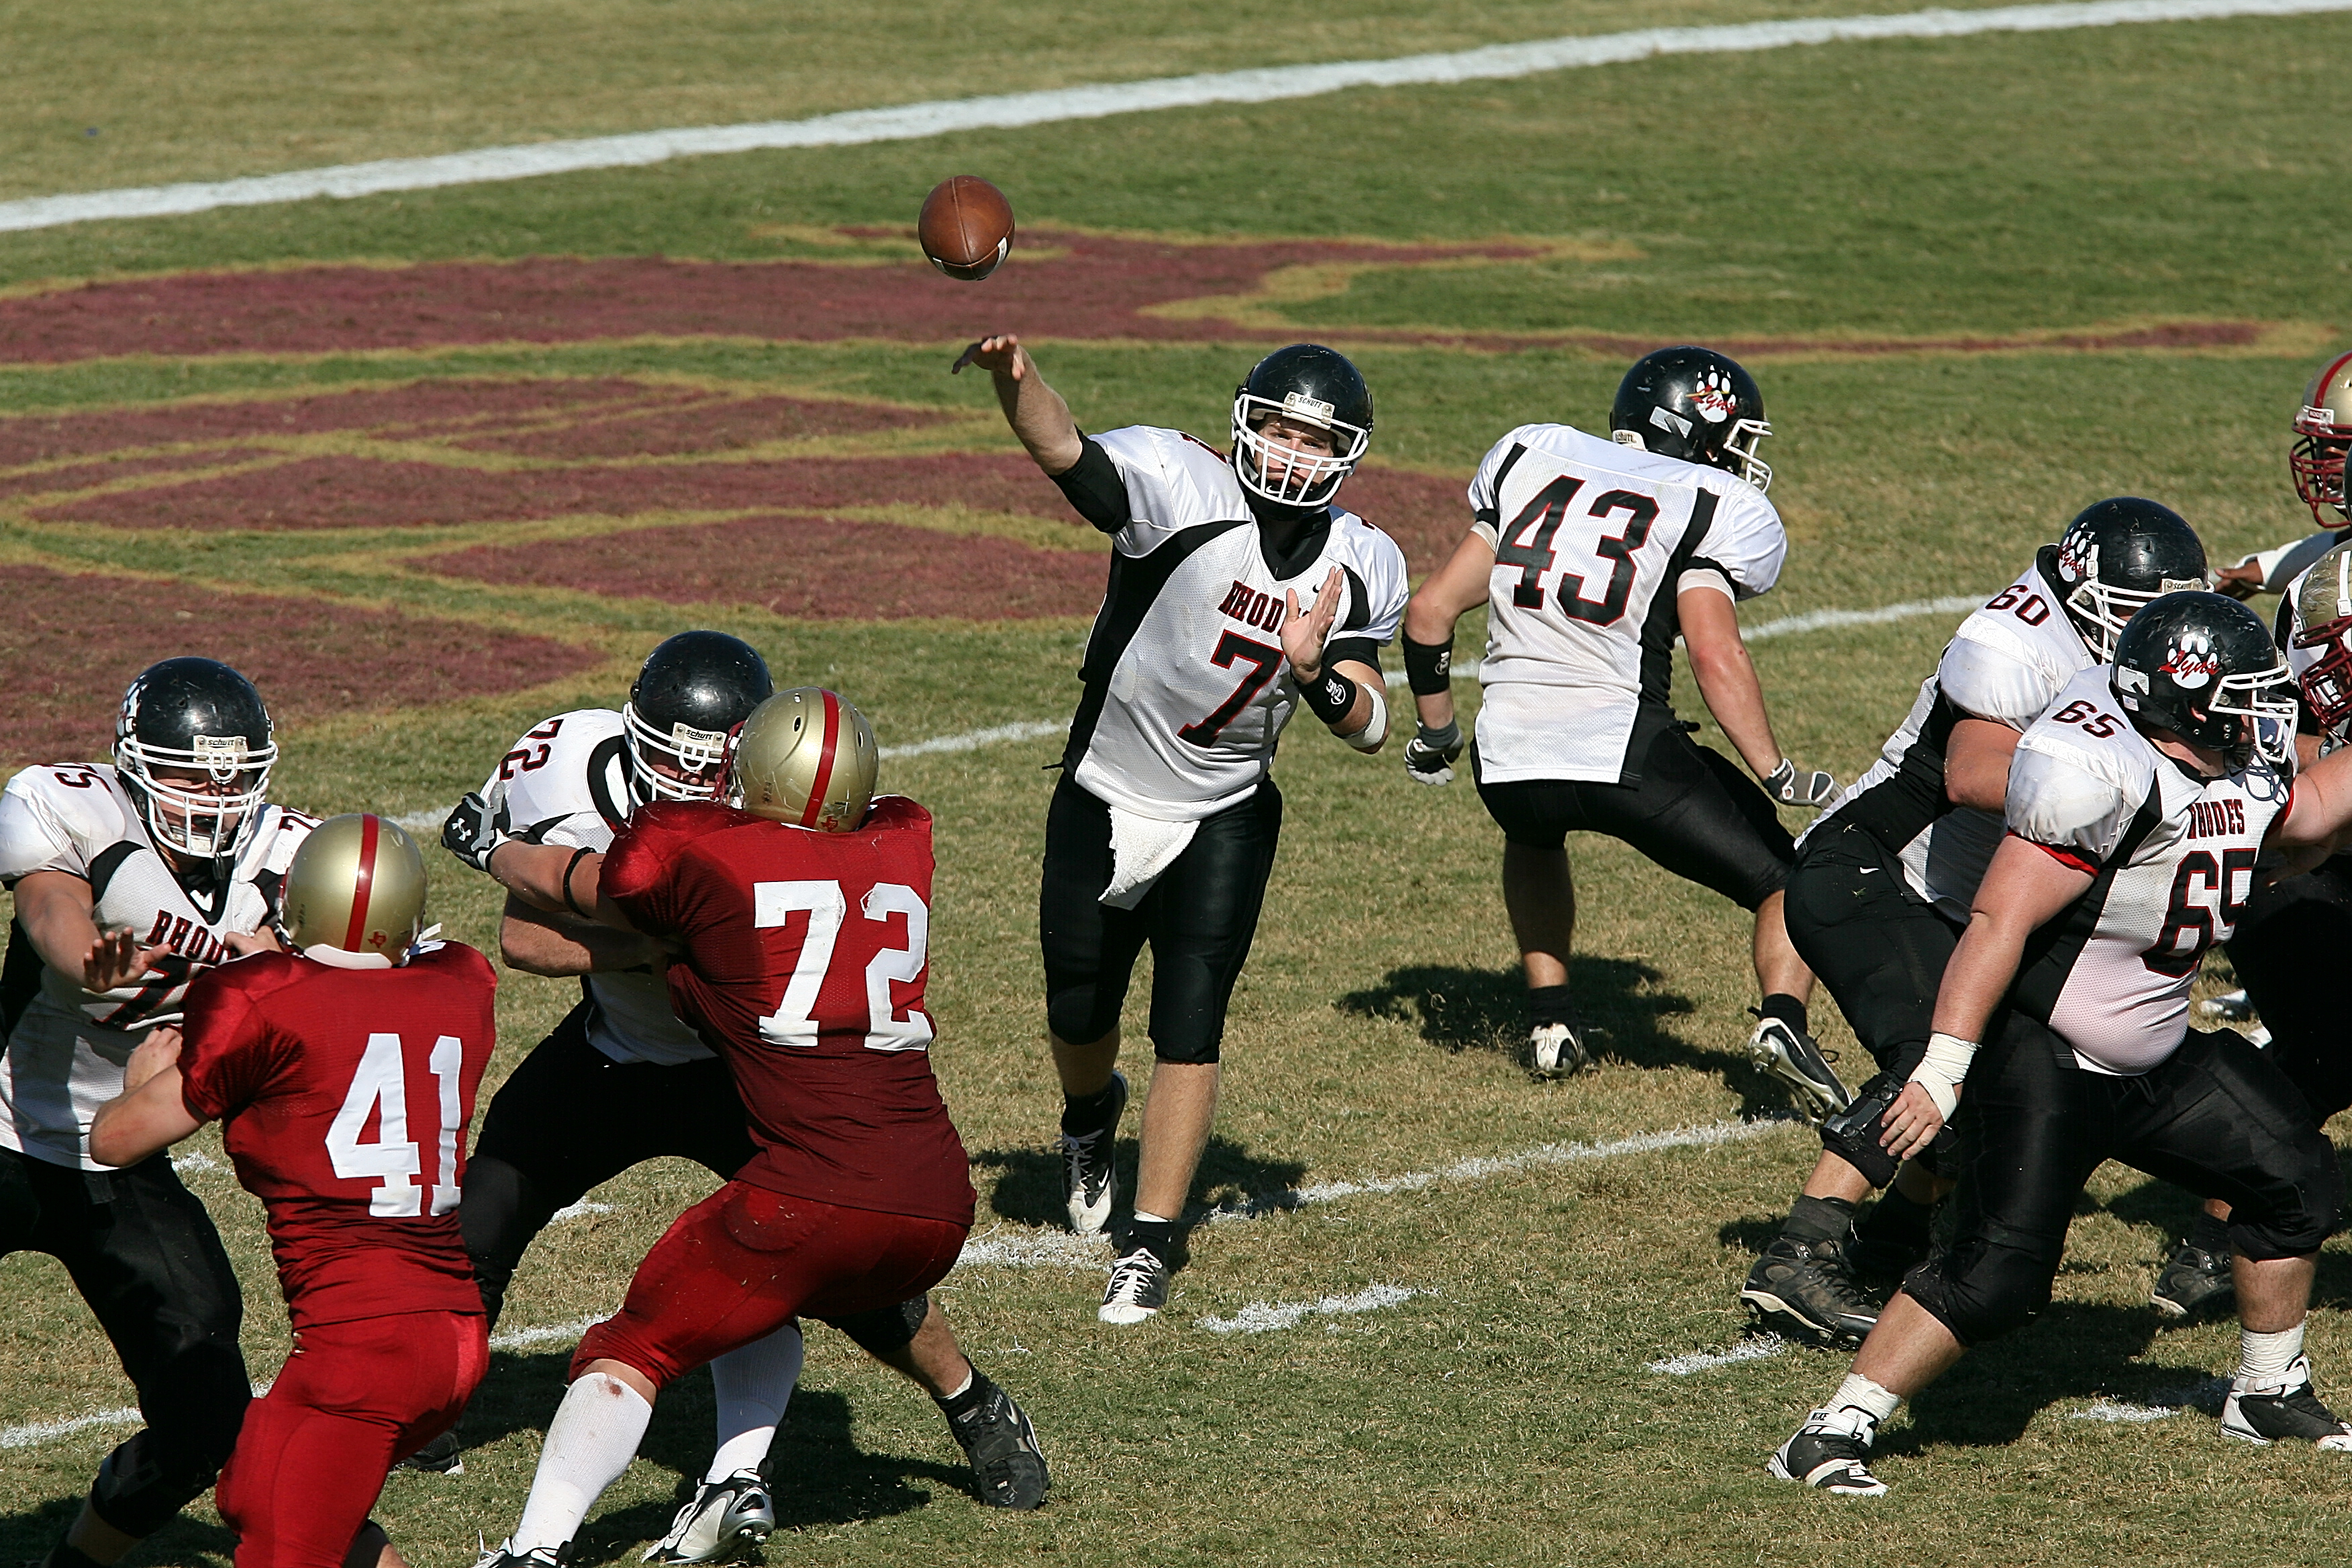 College quarterback passes the football while his teammates protect him from onrushing opponents.